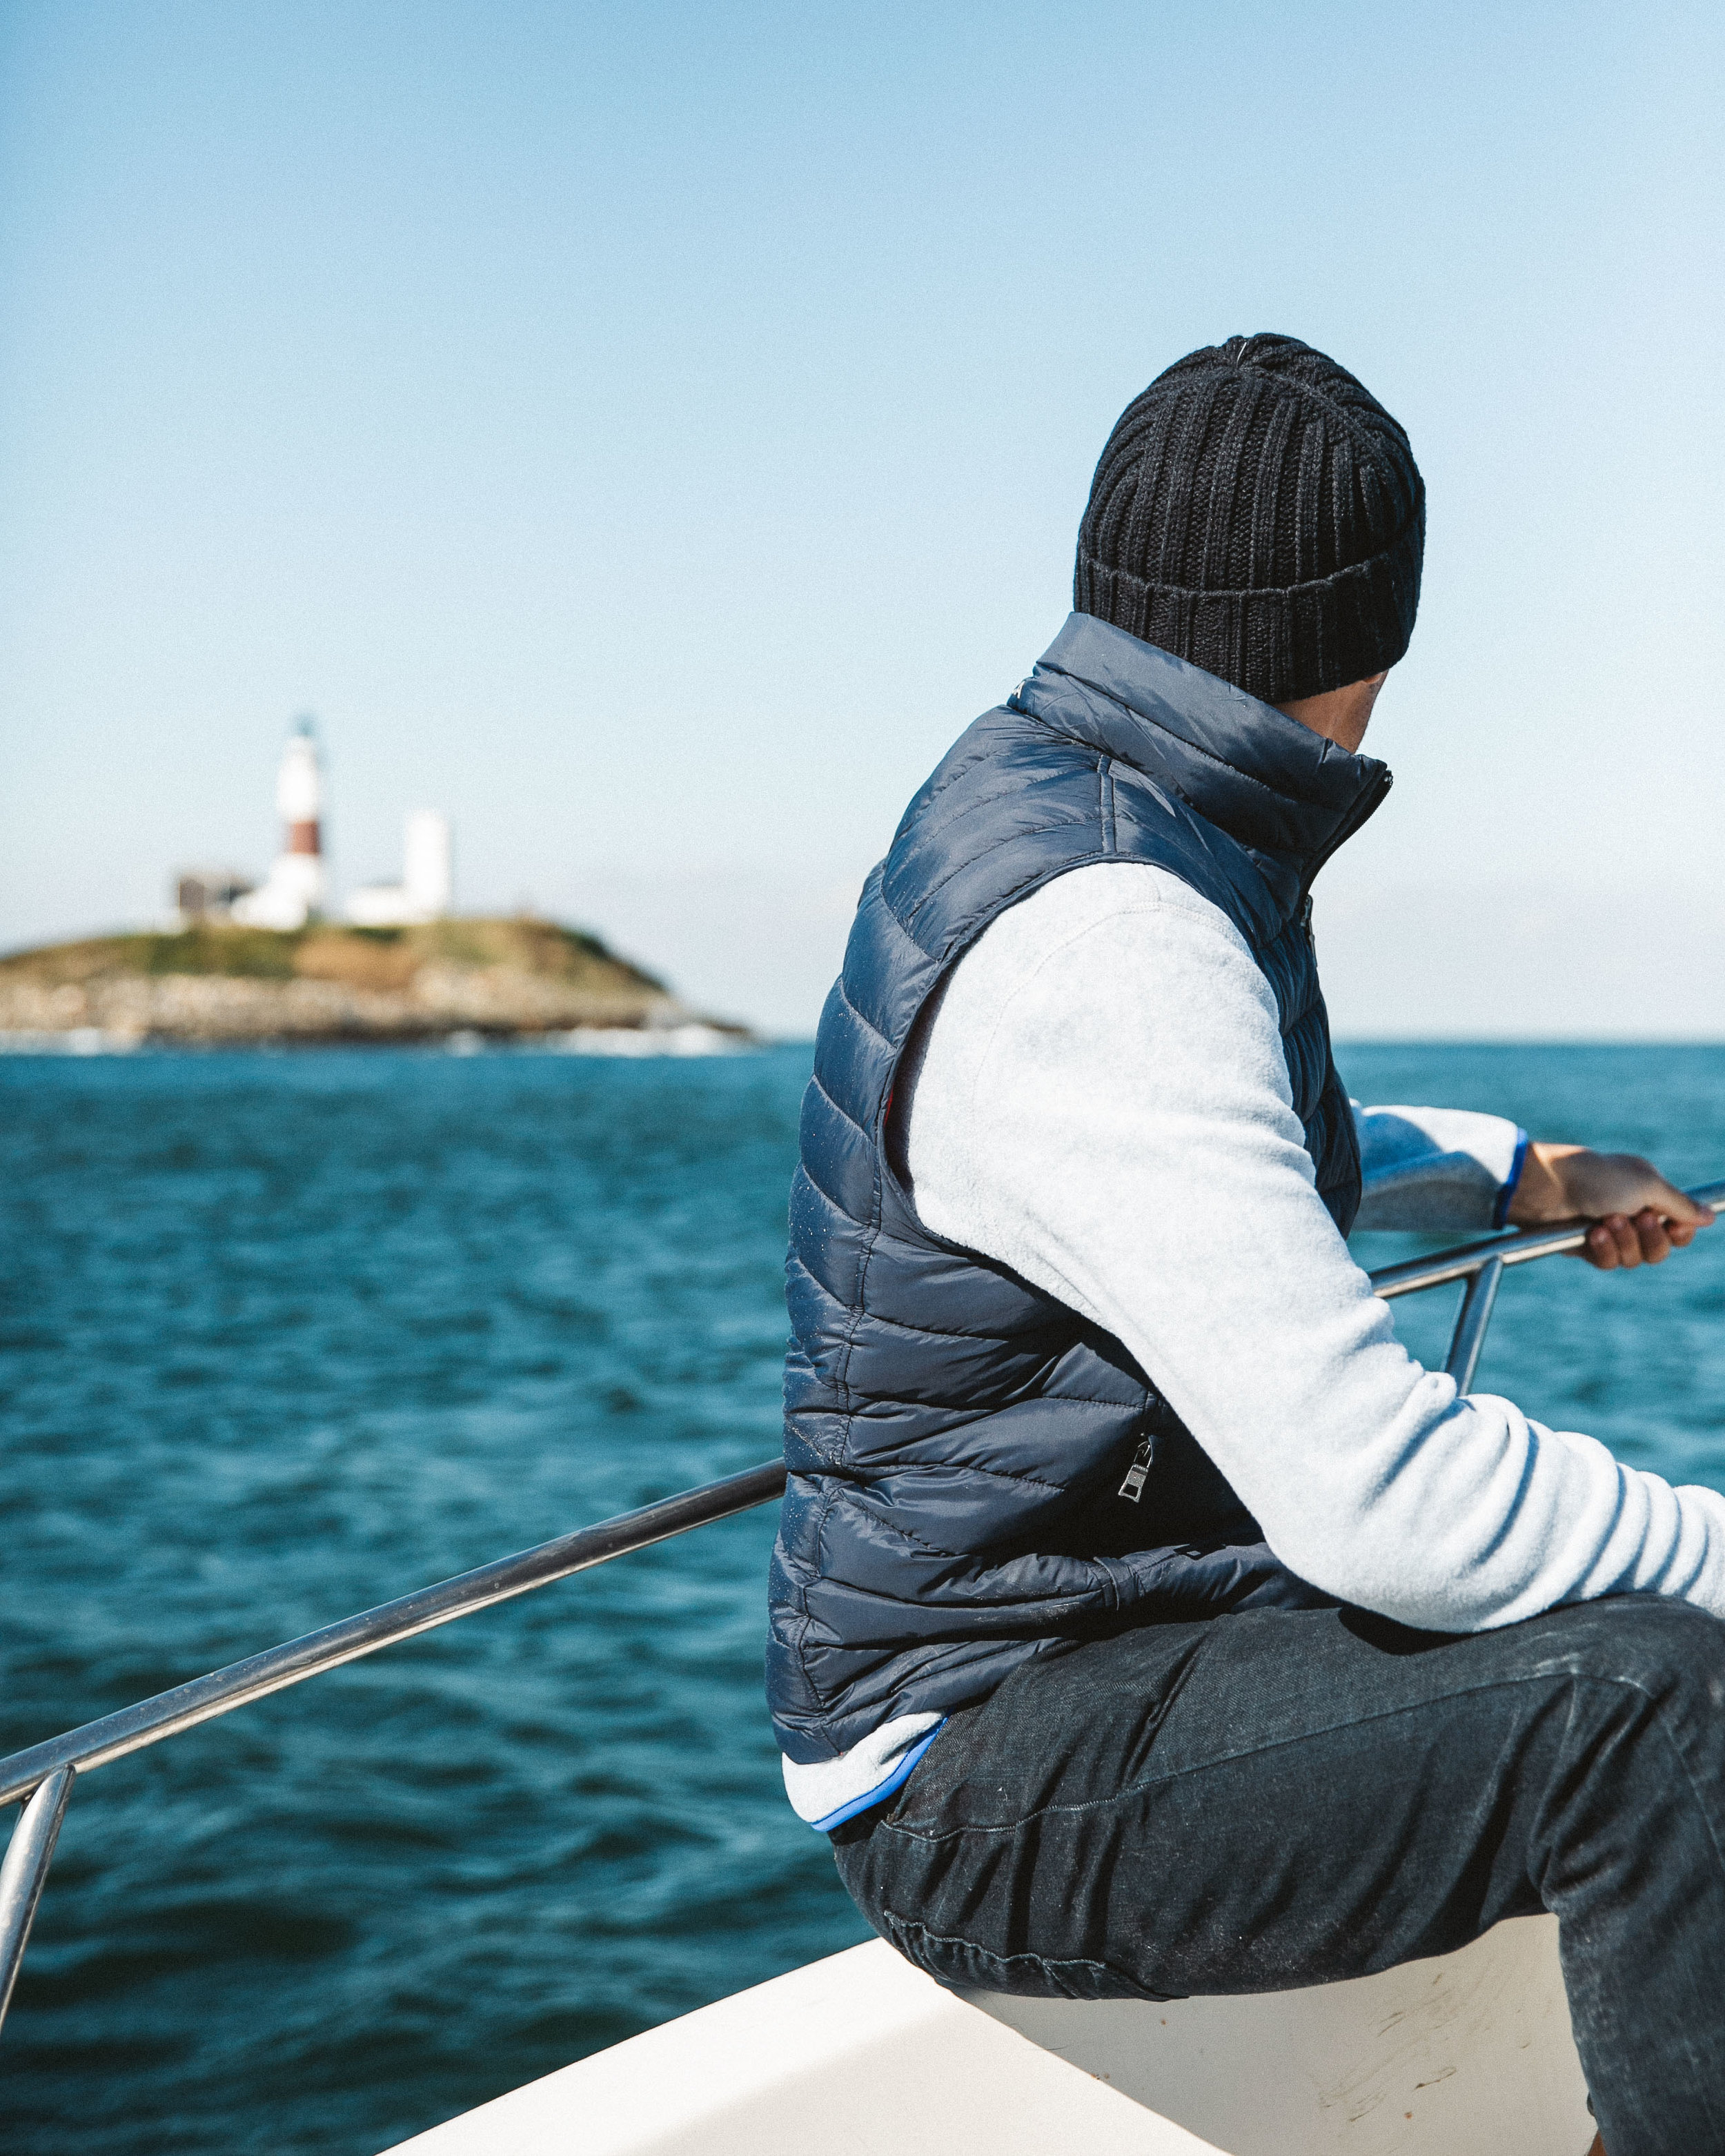 An hour of diving in the water off Montauk in October will chill you to your core… here I am trying to warm back up on the boat ride in.